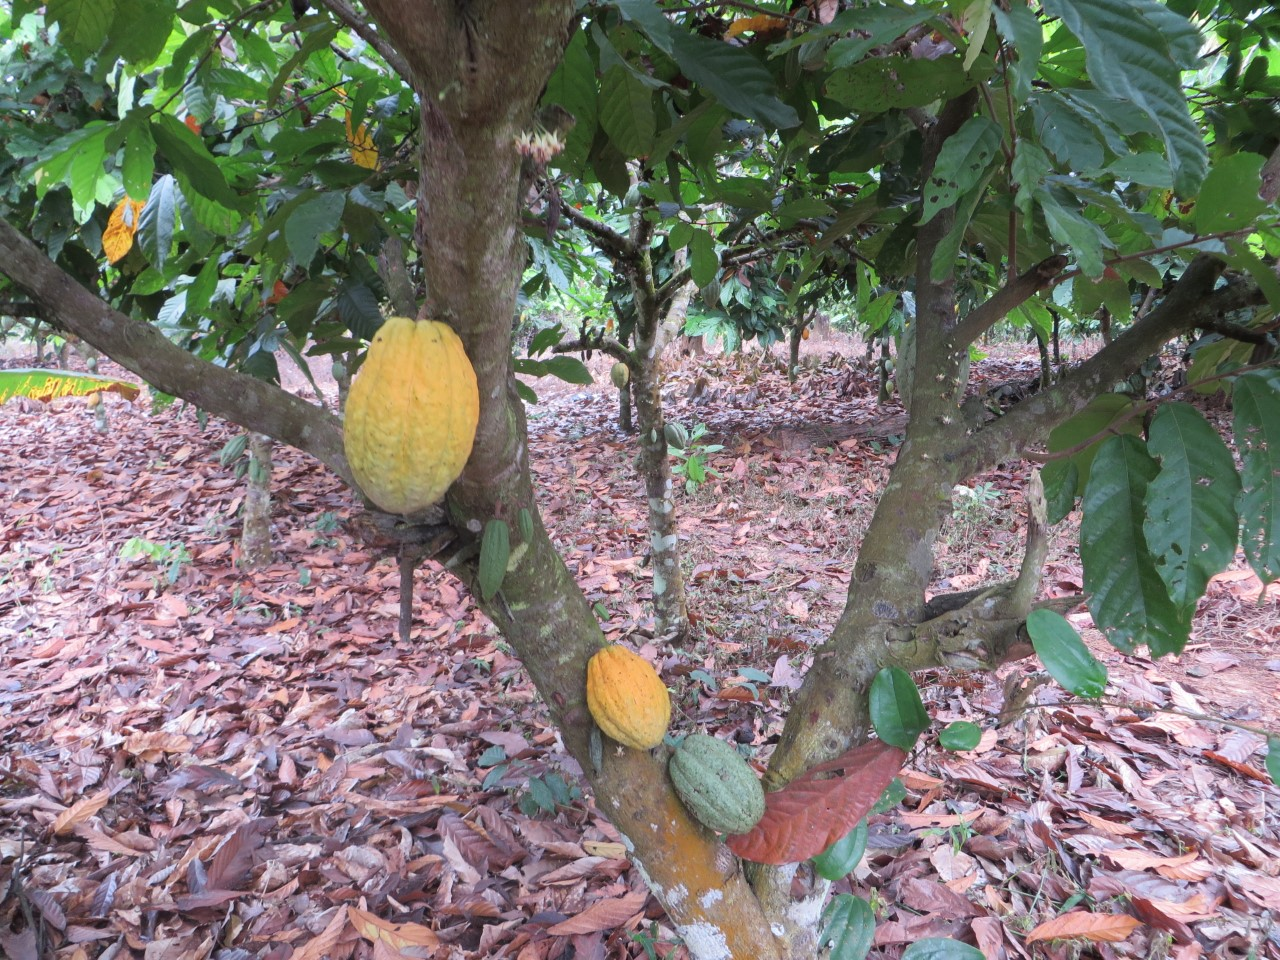 A cocoa tree with the pods growing from the trunk. The beans which are fermented, dried, and ground into cocoa powder are the seeds inside these pods.